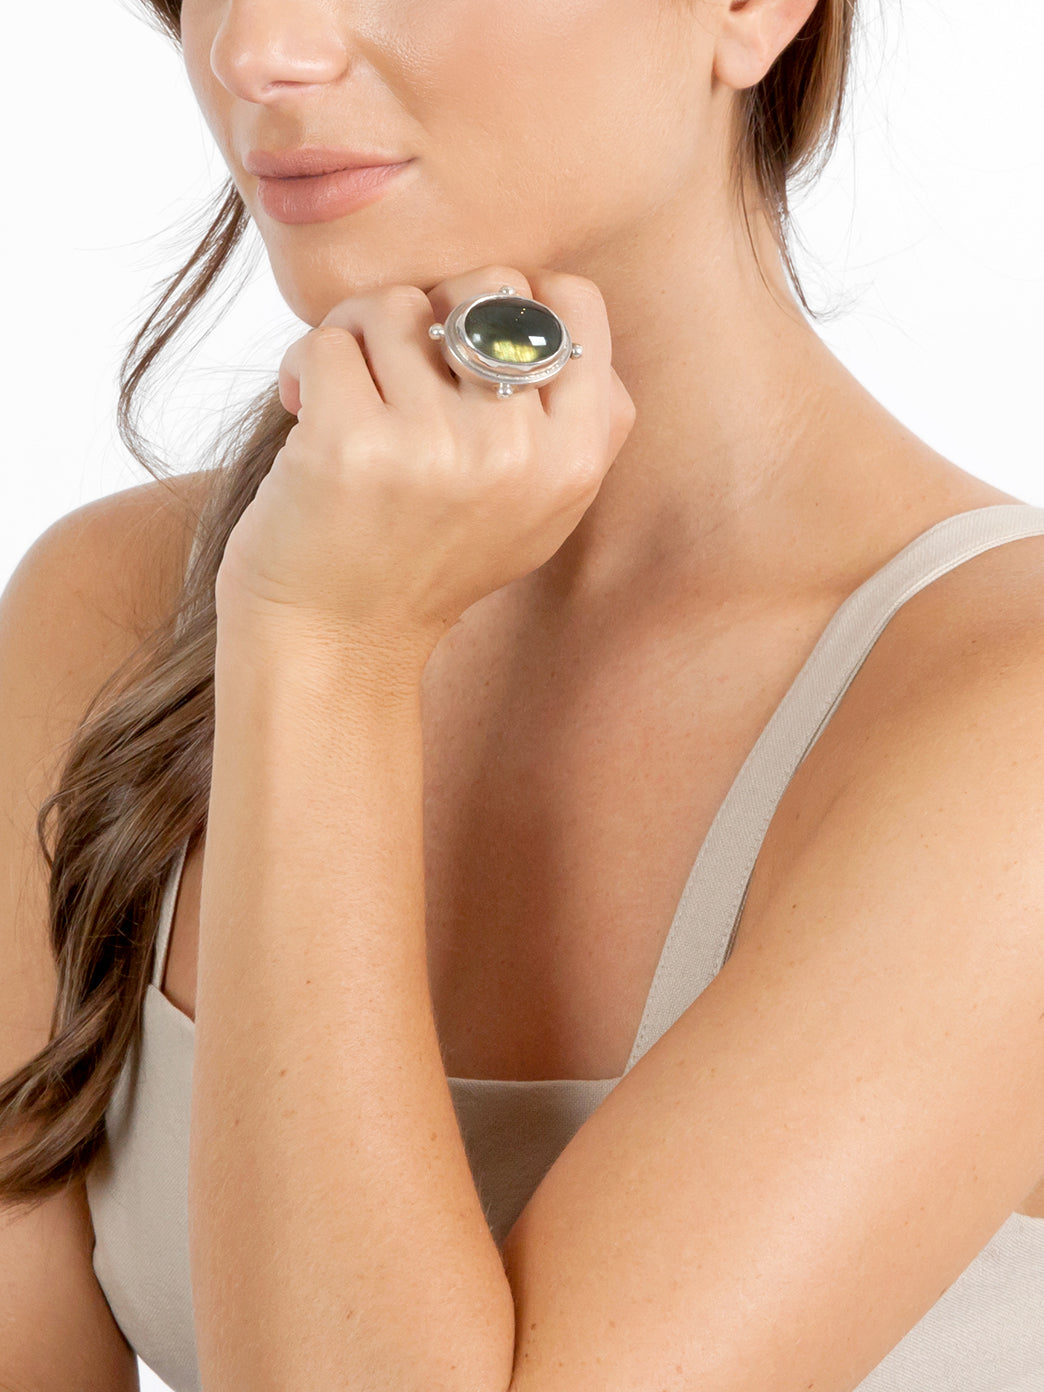 Fiorina Jewellery Cocktail Ring Model